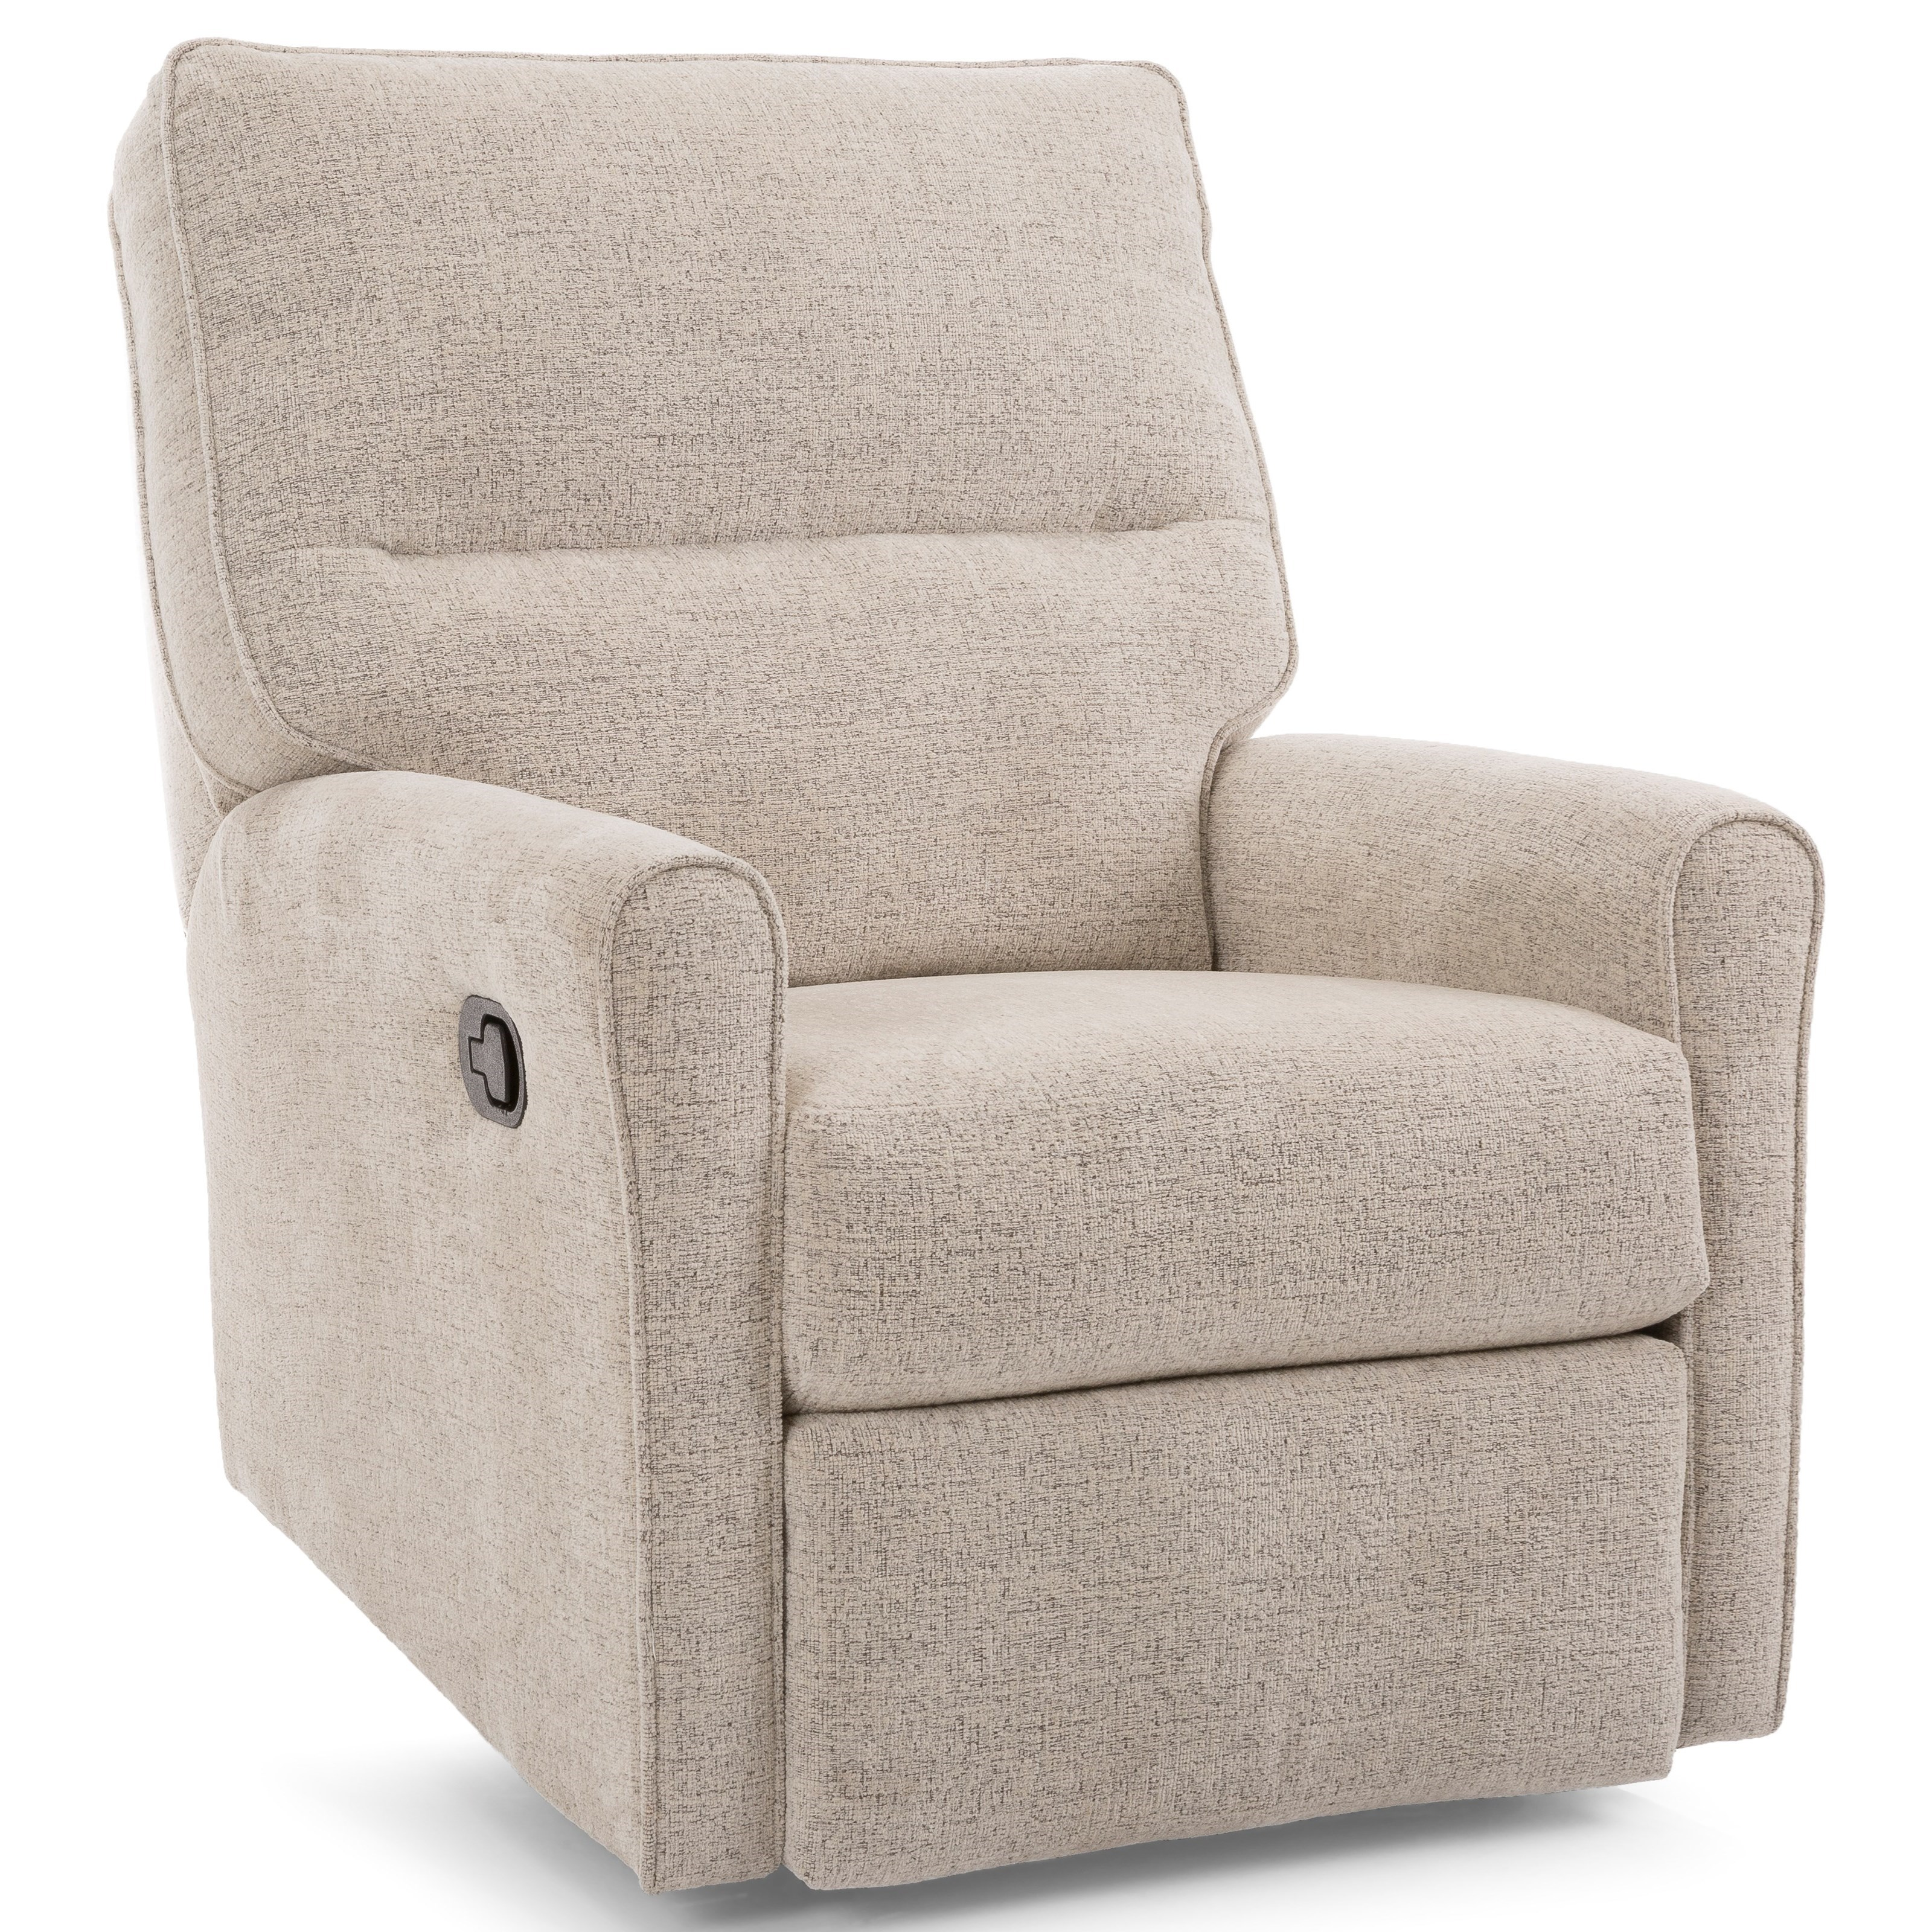 M846 Power Tilt Recliner by Decor-Rest at Stoney Creek Furniture